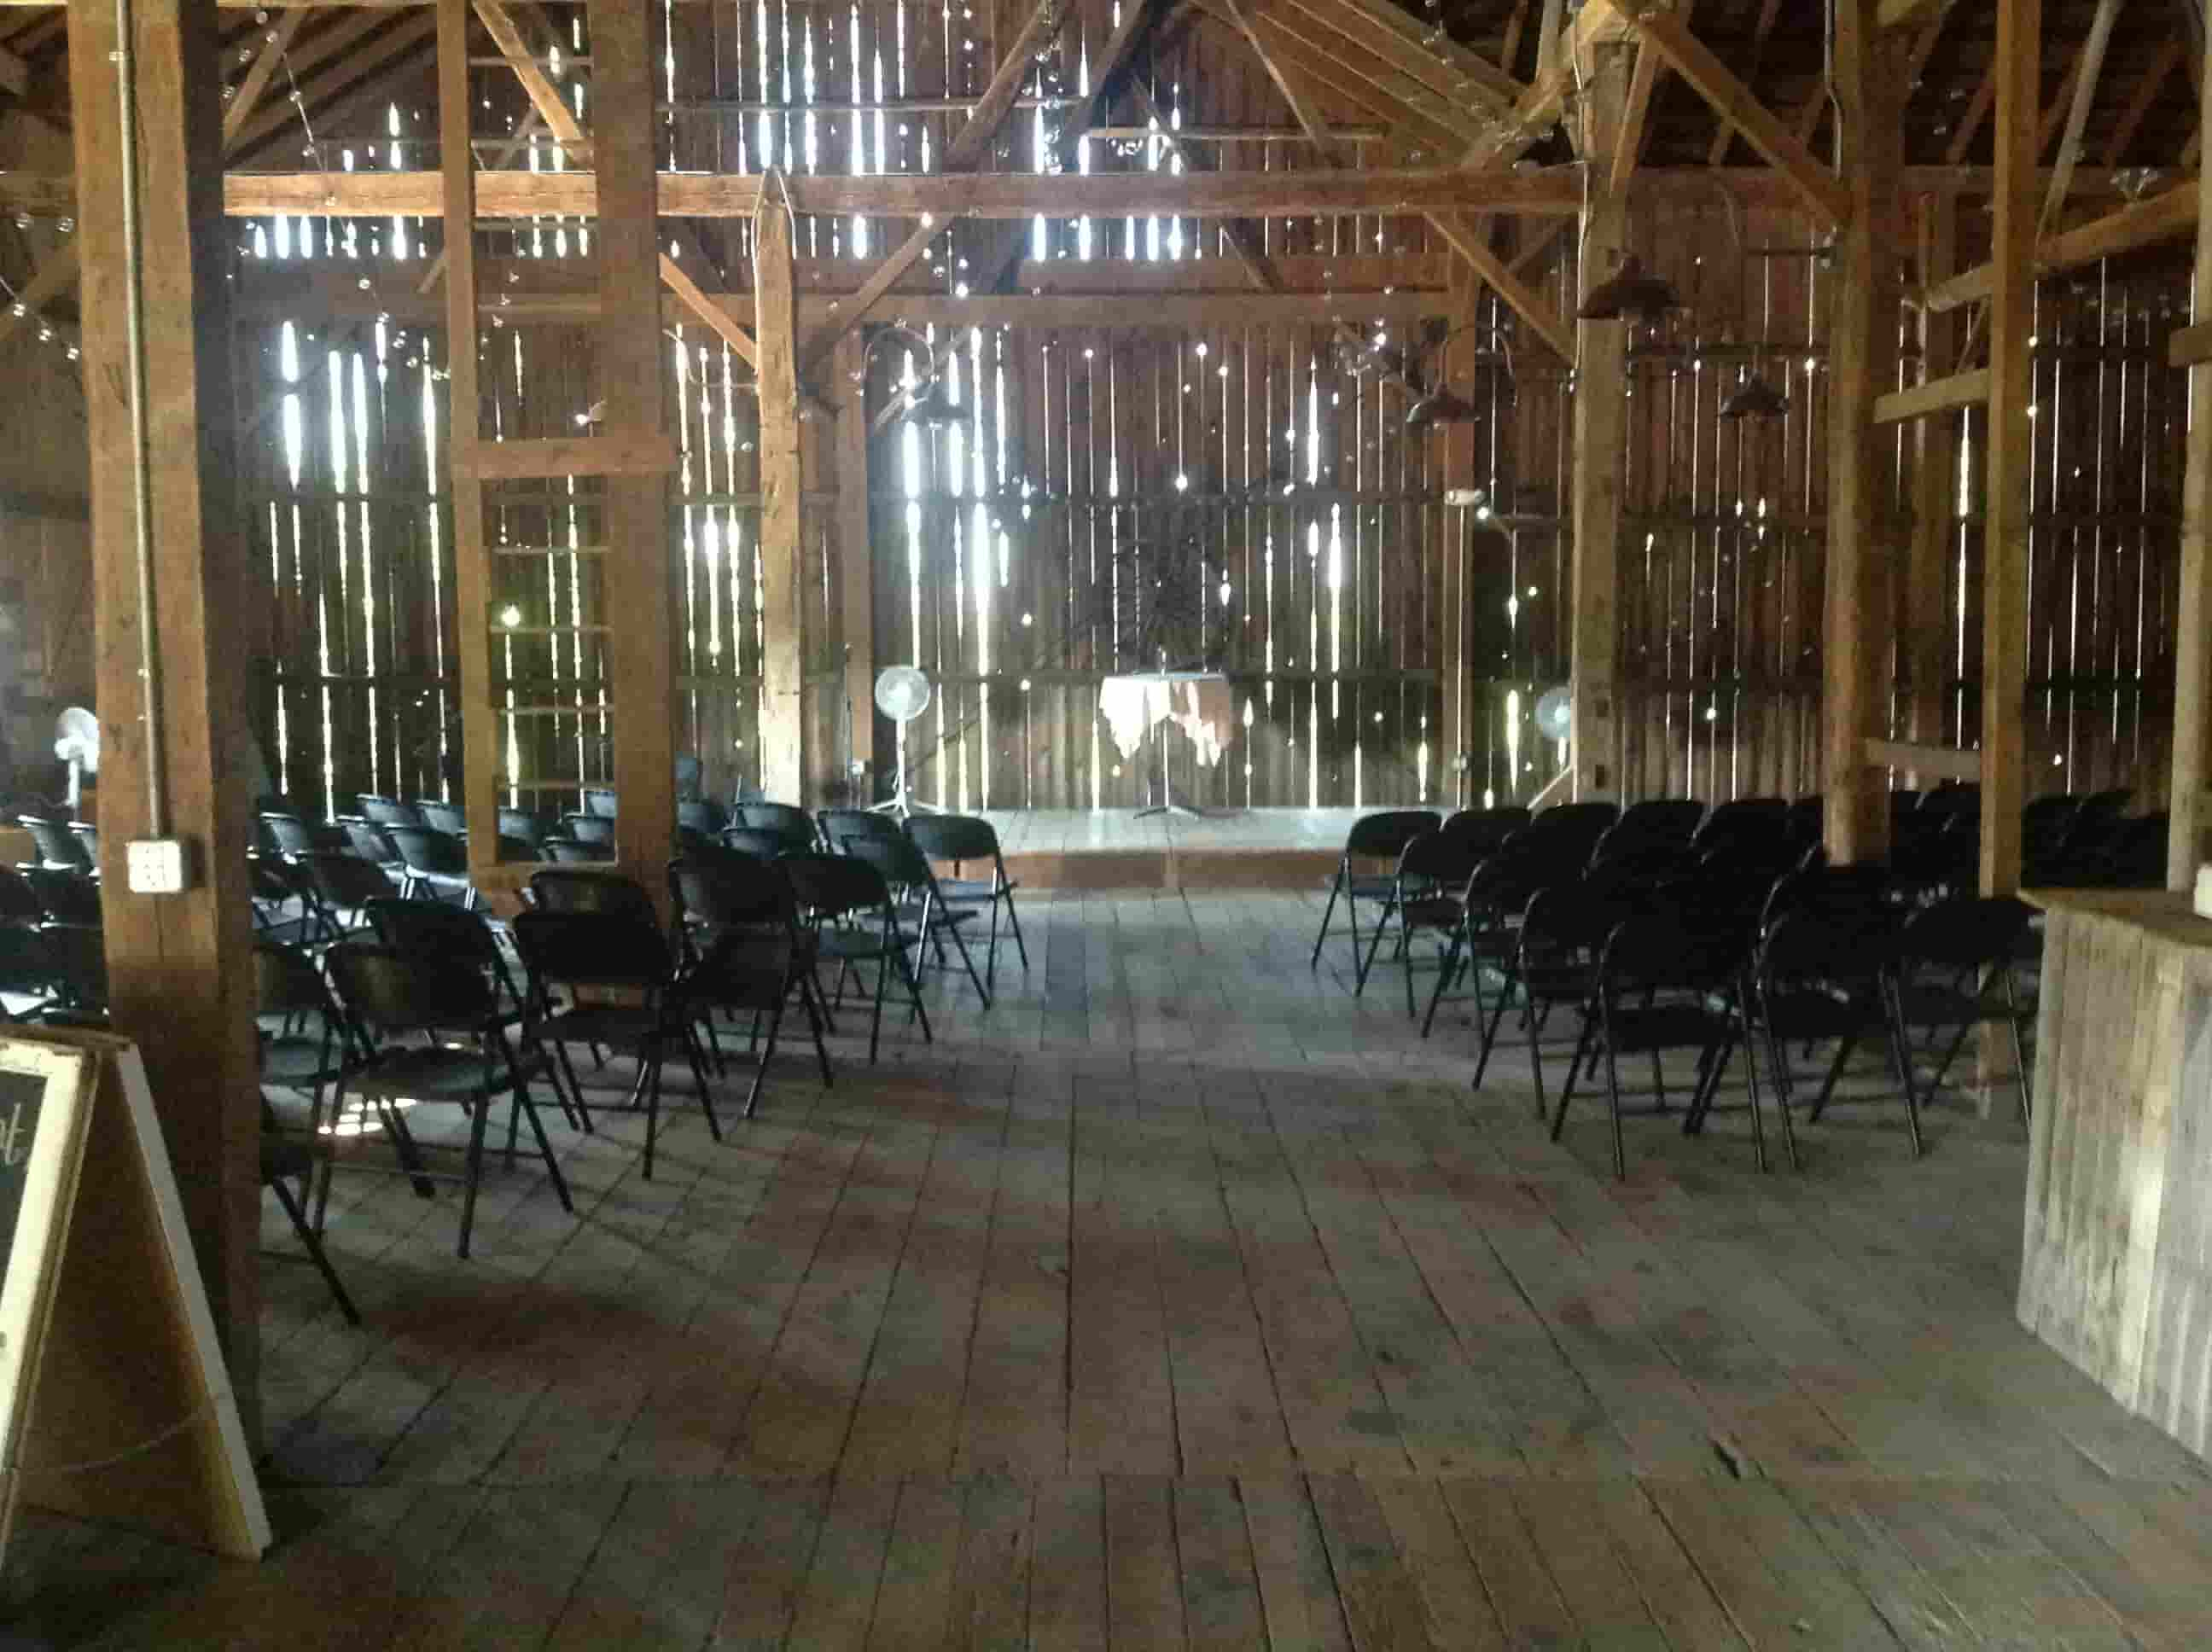 The barn setup for a wedding